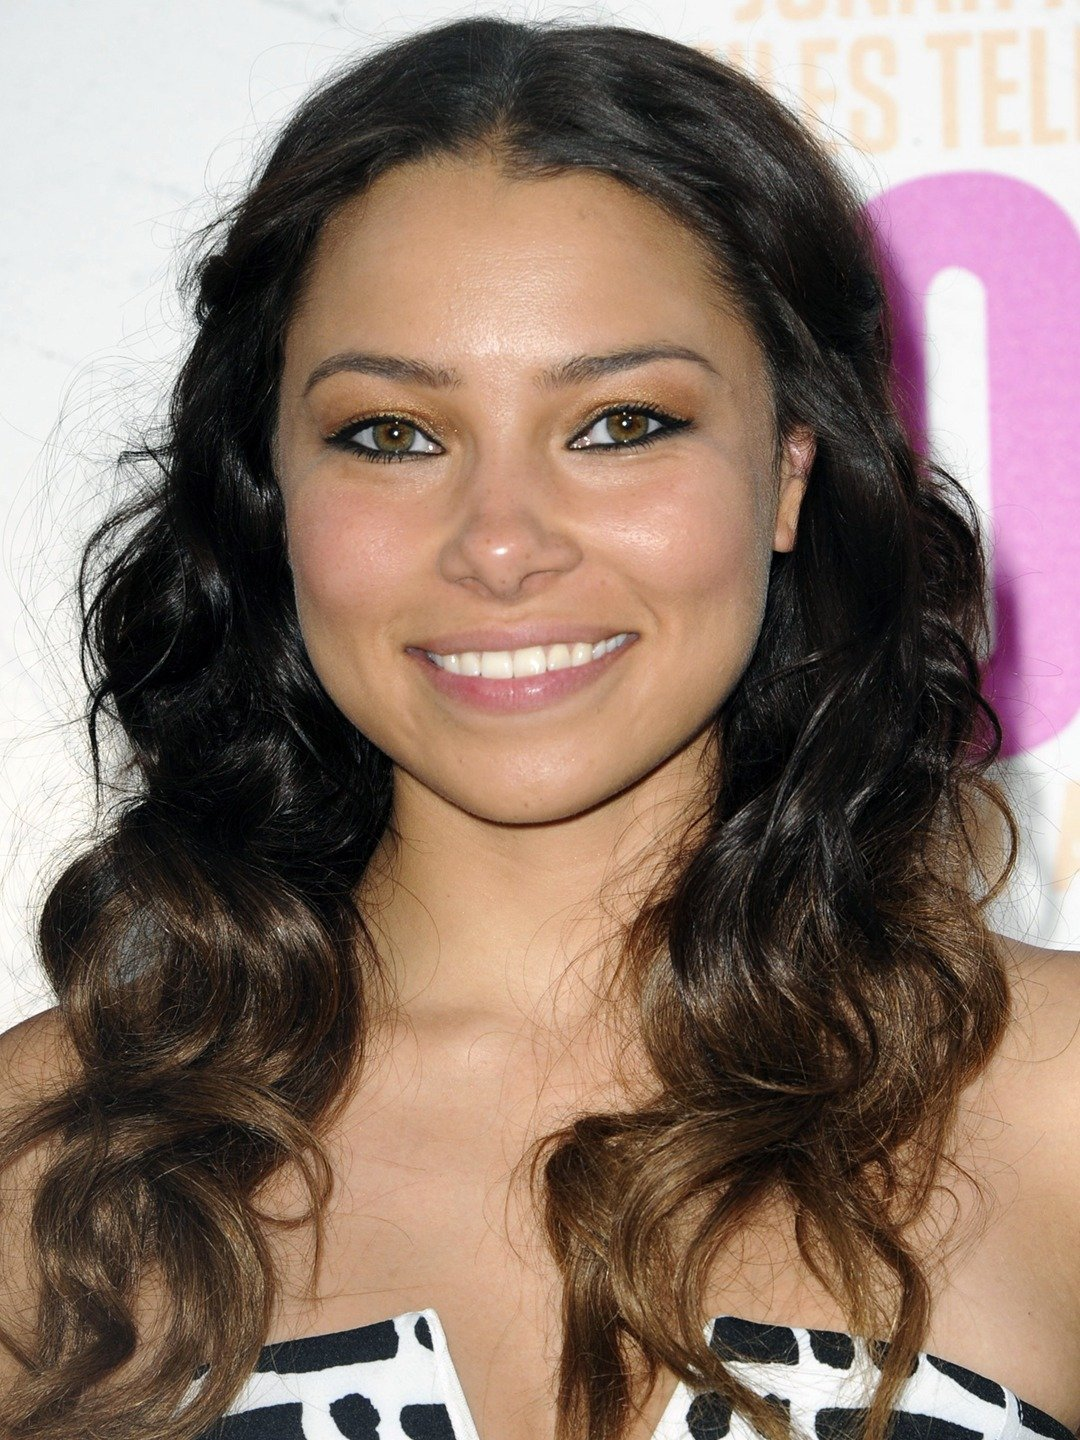 How tall is Jessica Parker Kennedy?